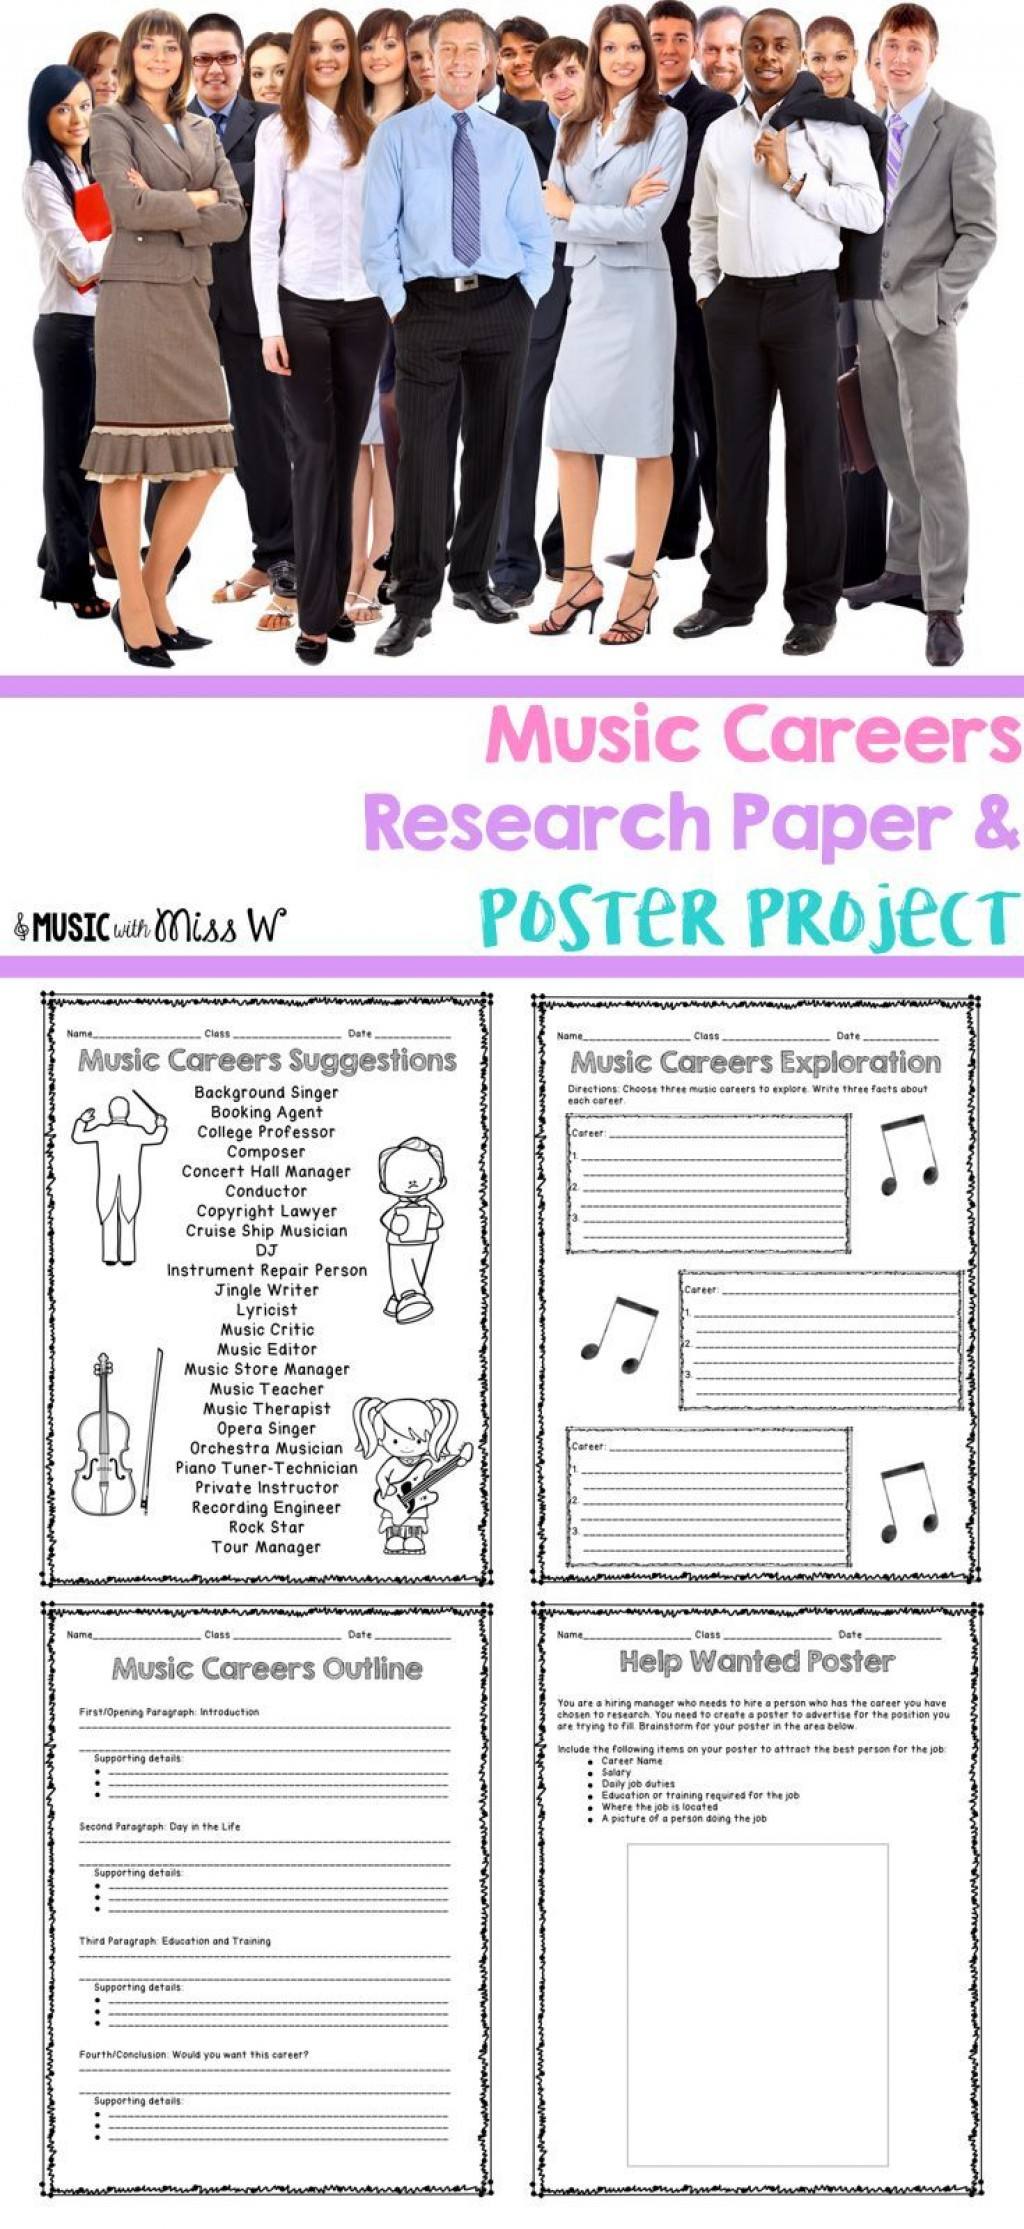 009 Research Paper Career Outline Middle School Dreaded Large